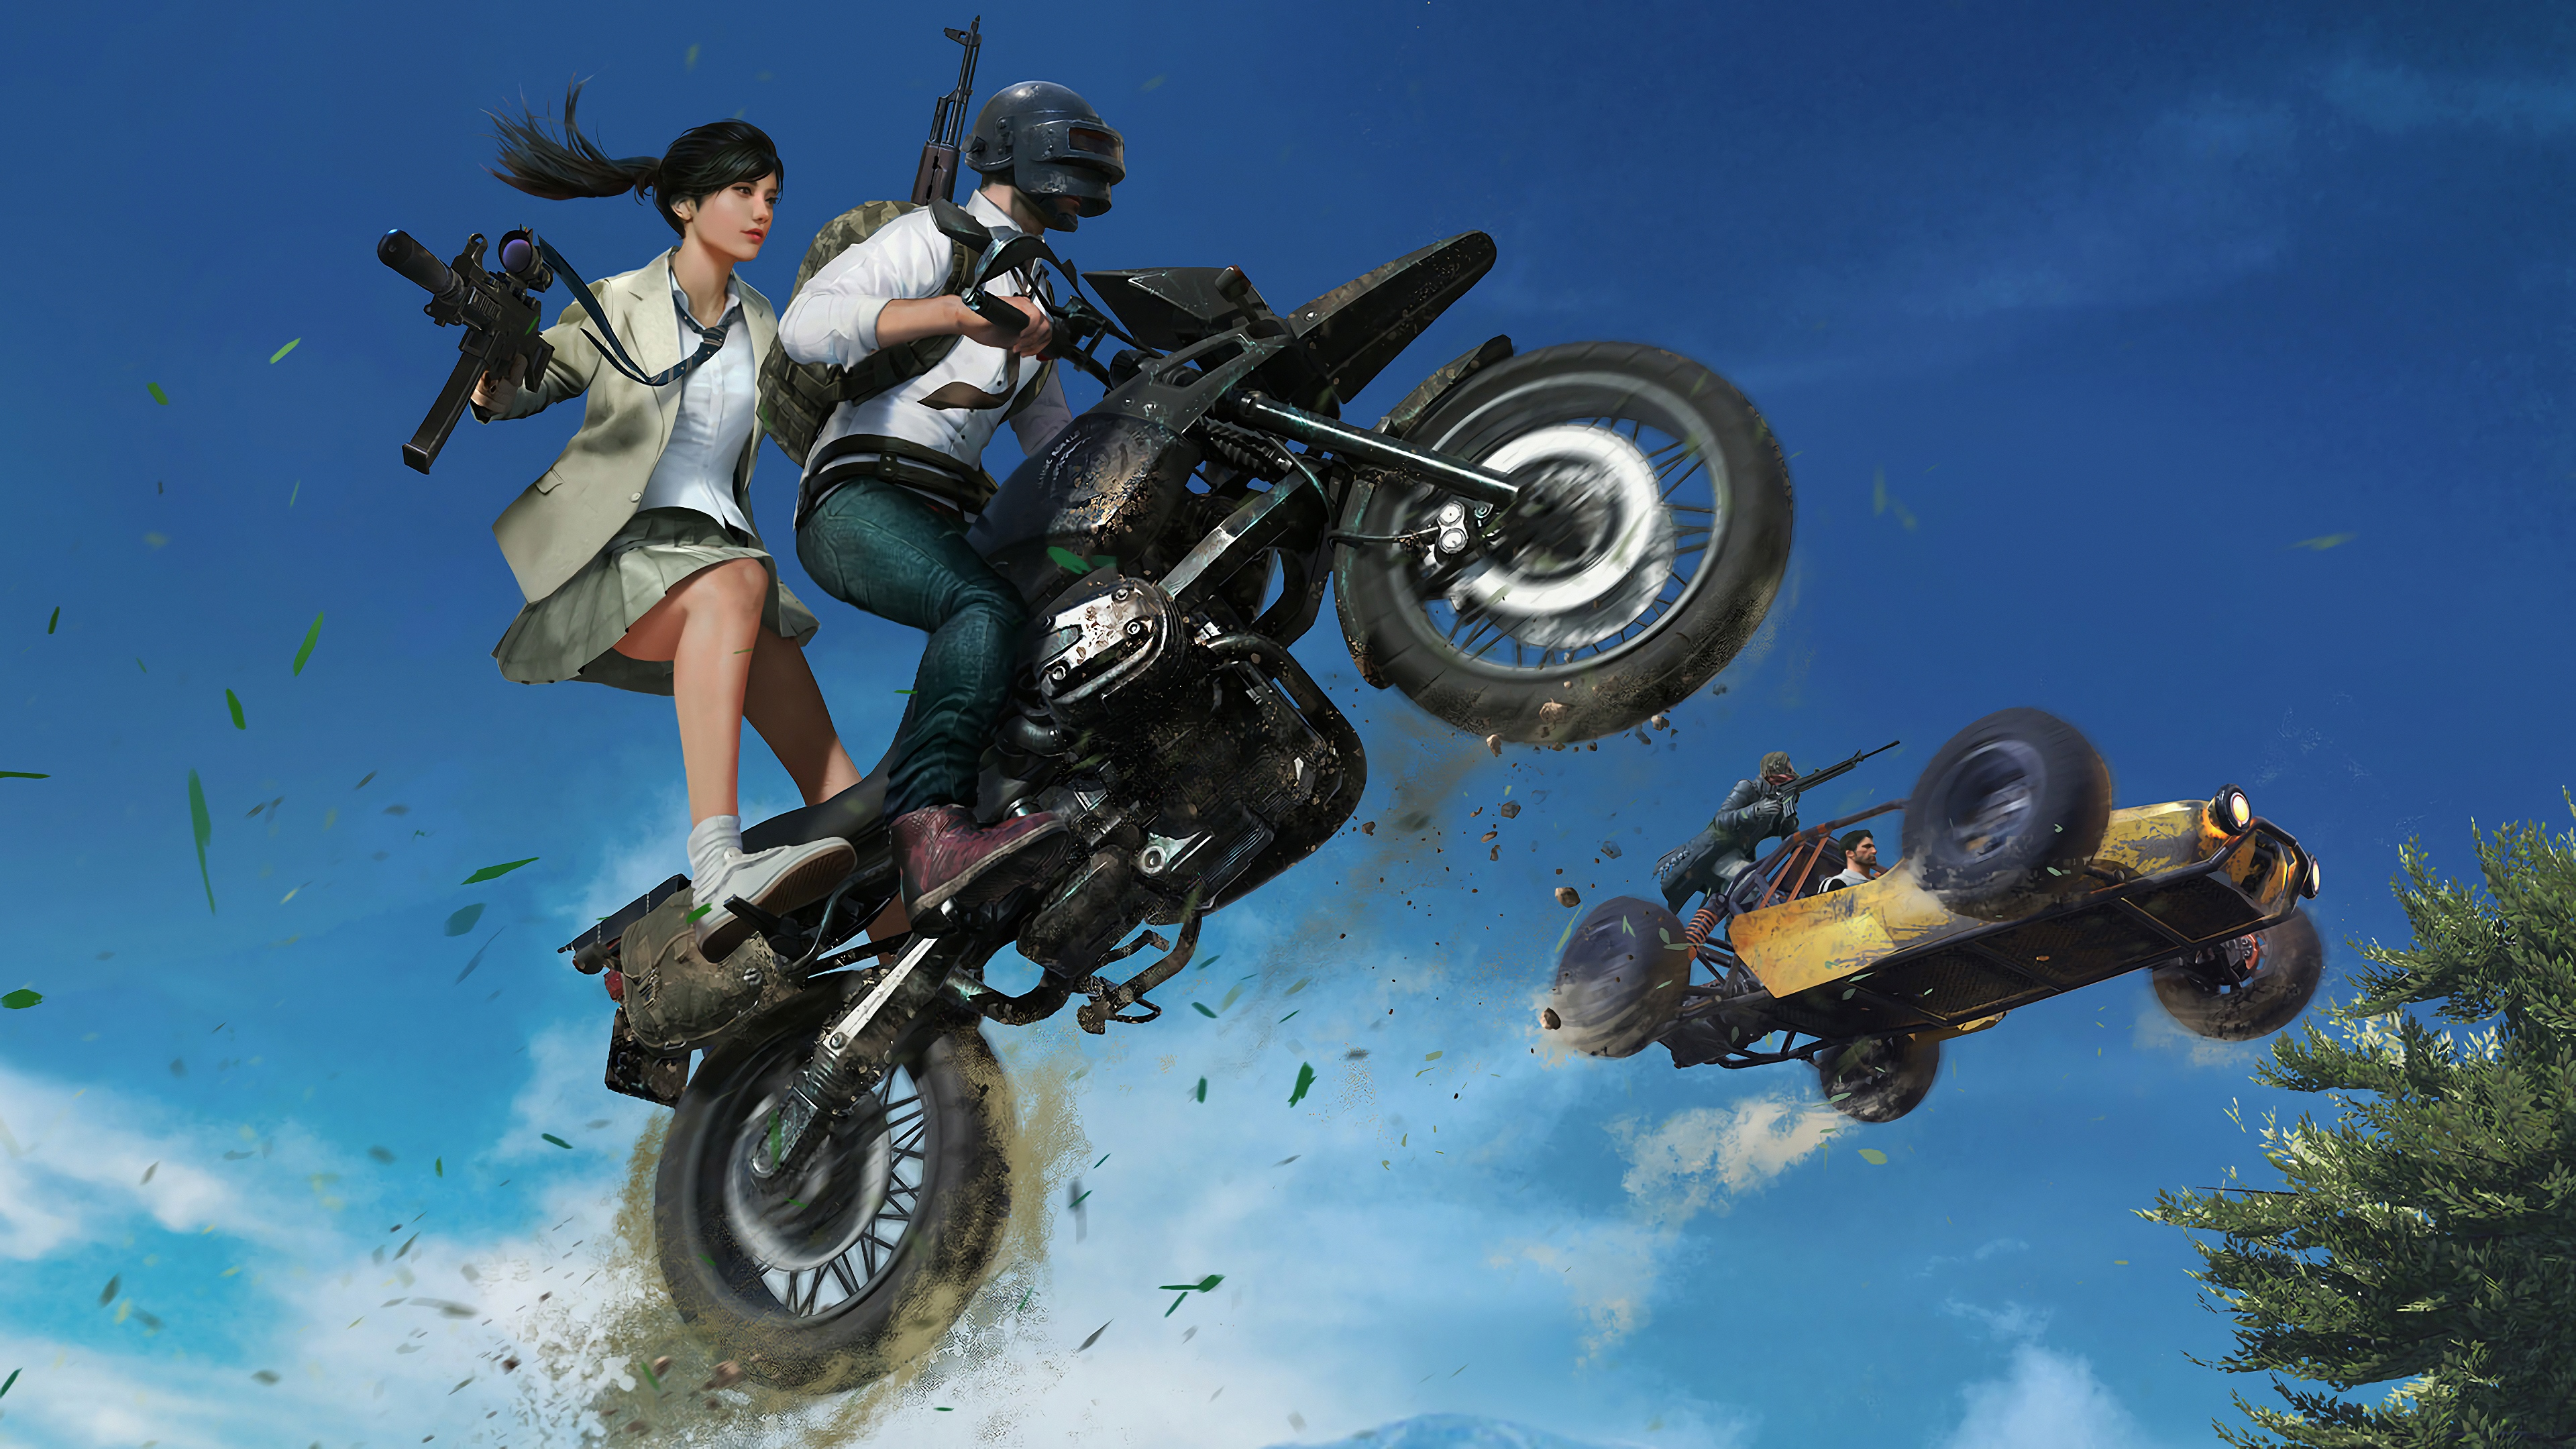 2048x1152 Pubg Bike Rider 4k 2048x1152 Resolution Hd 4k: Pubg Game Chase 4k, HD Games, 4k Wallpapers, Images